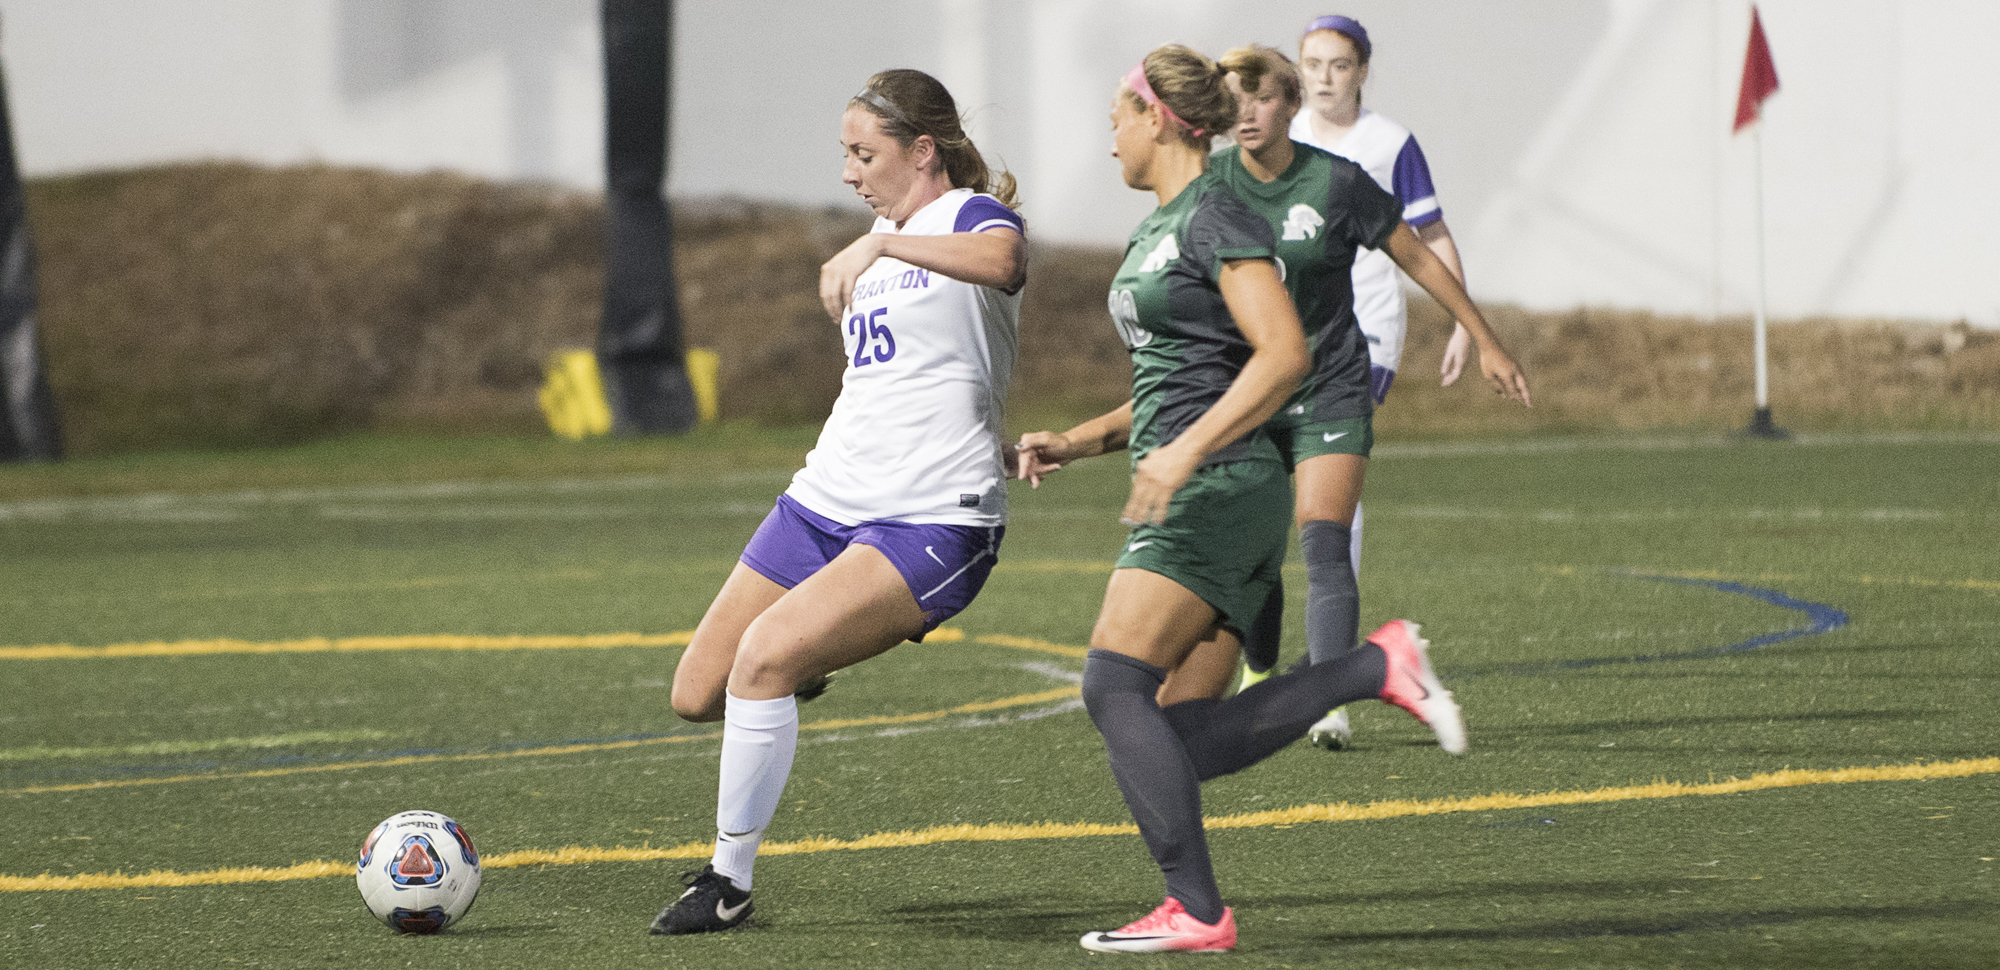 Senior Meredith D'Angelo scored her first goal of the season on Wednesday night.